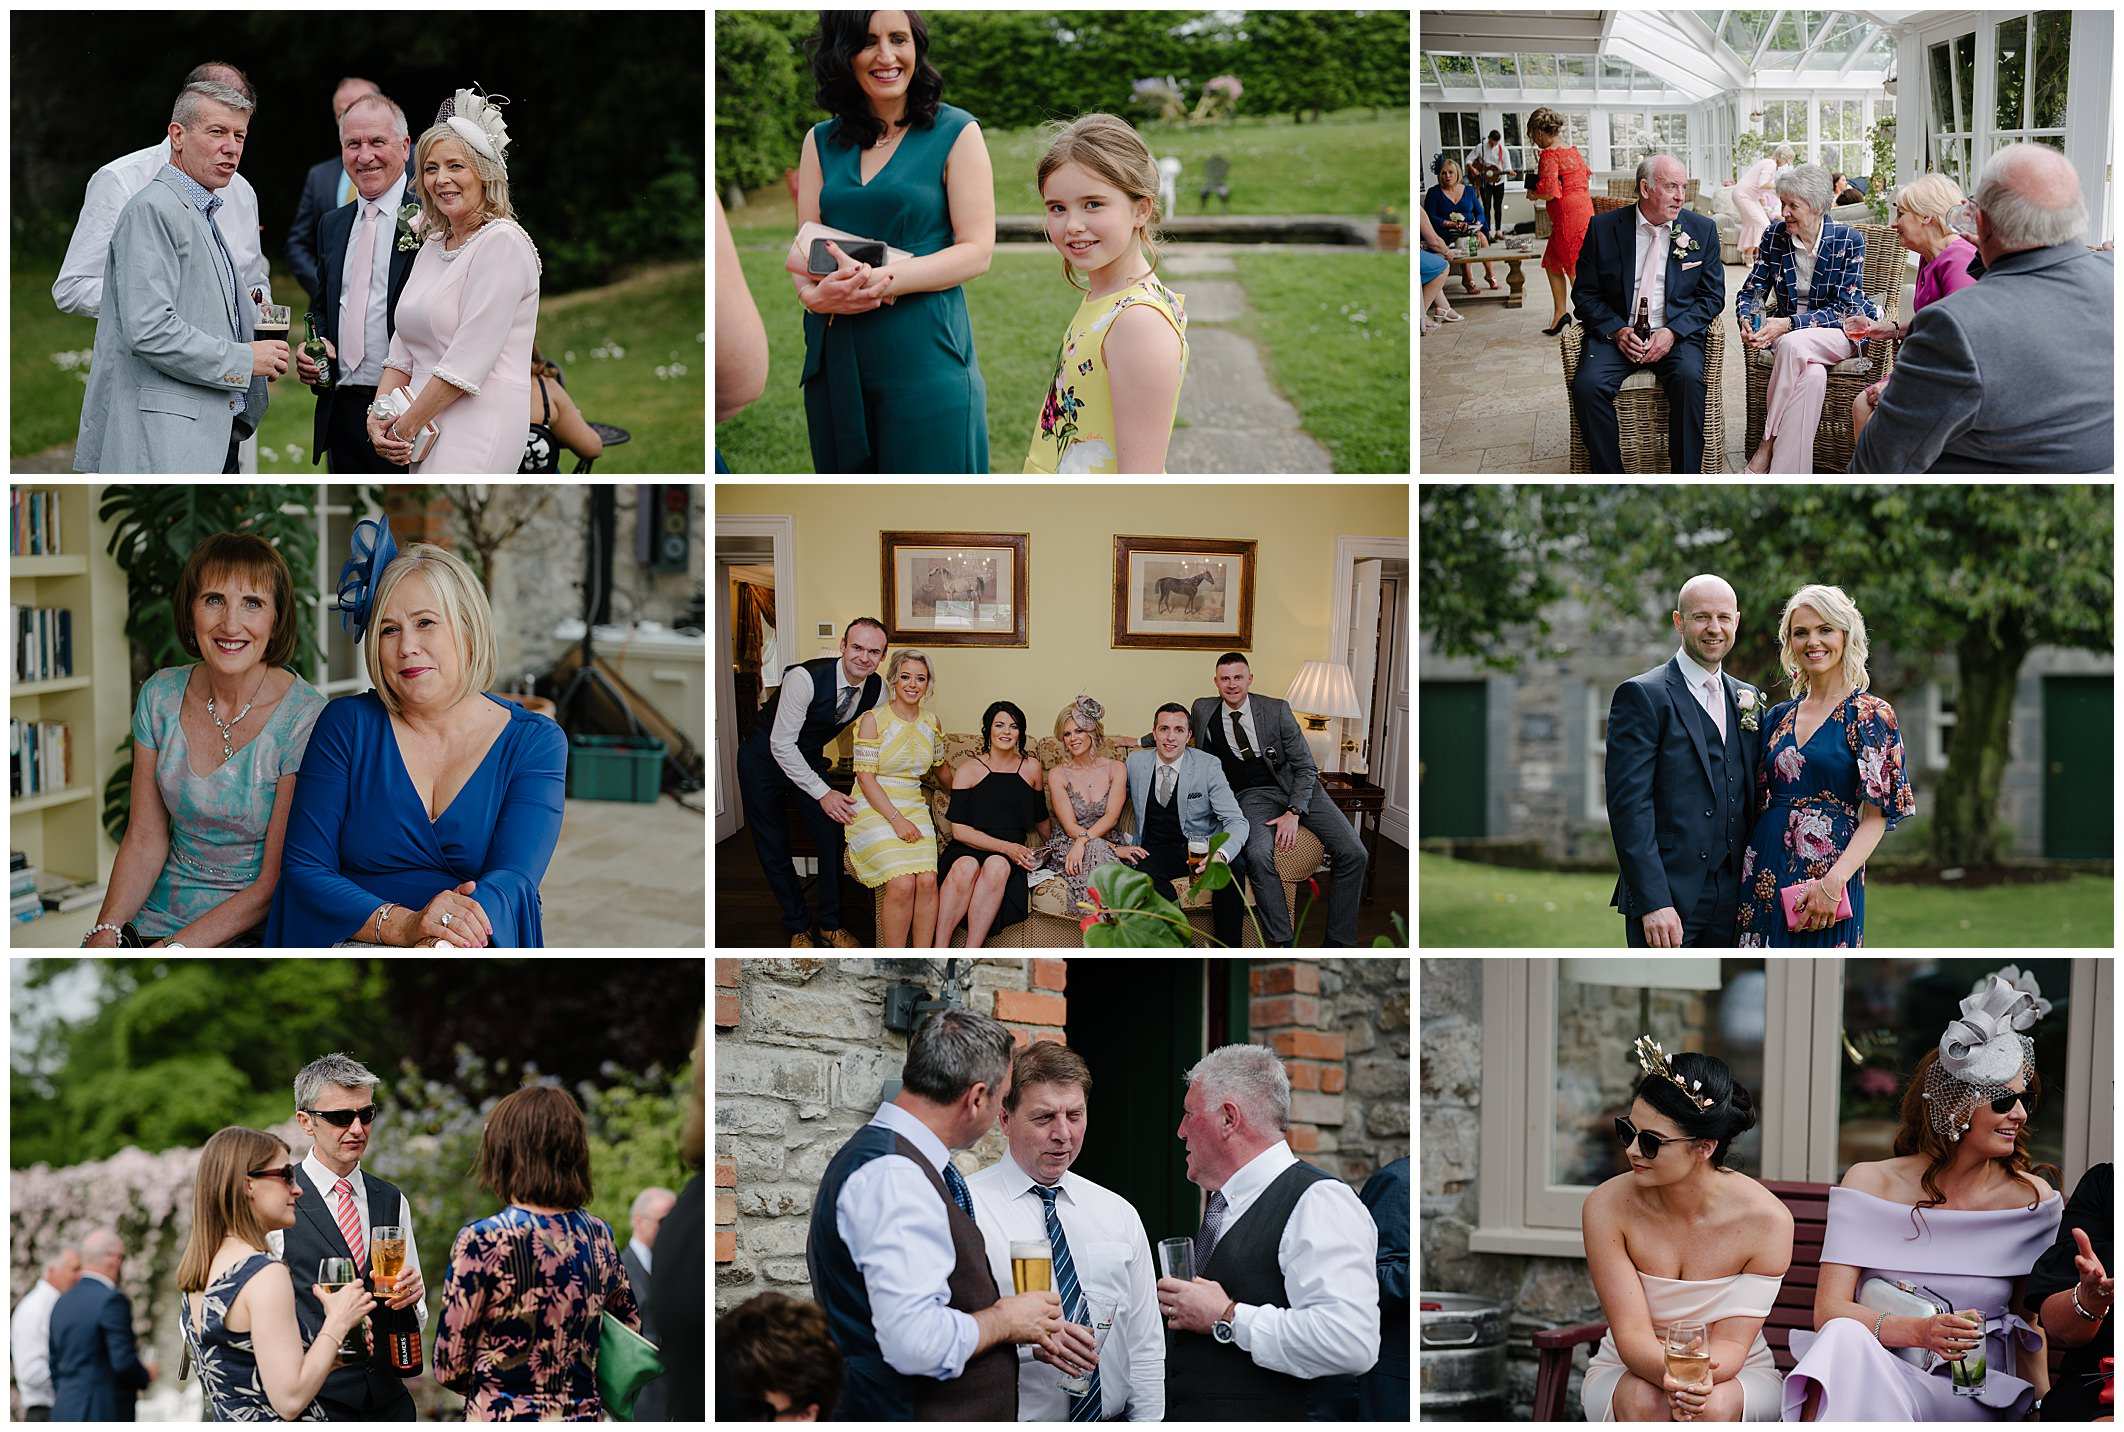 ballymagarvey-village-wedding-jude-browne-photography-122.jpg